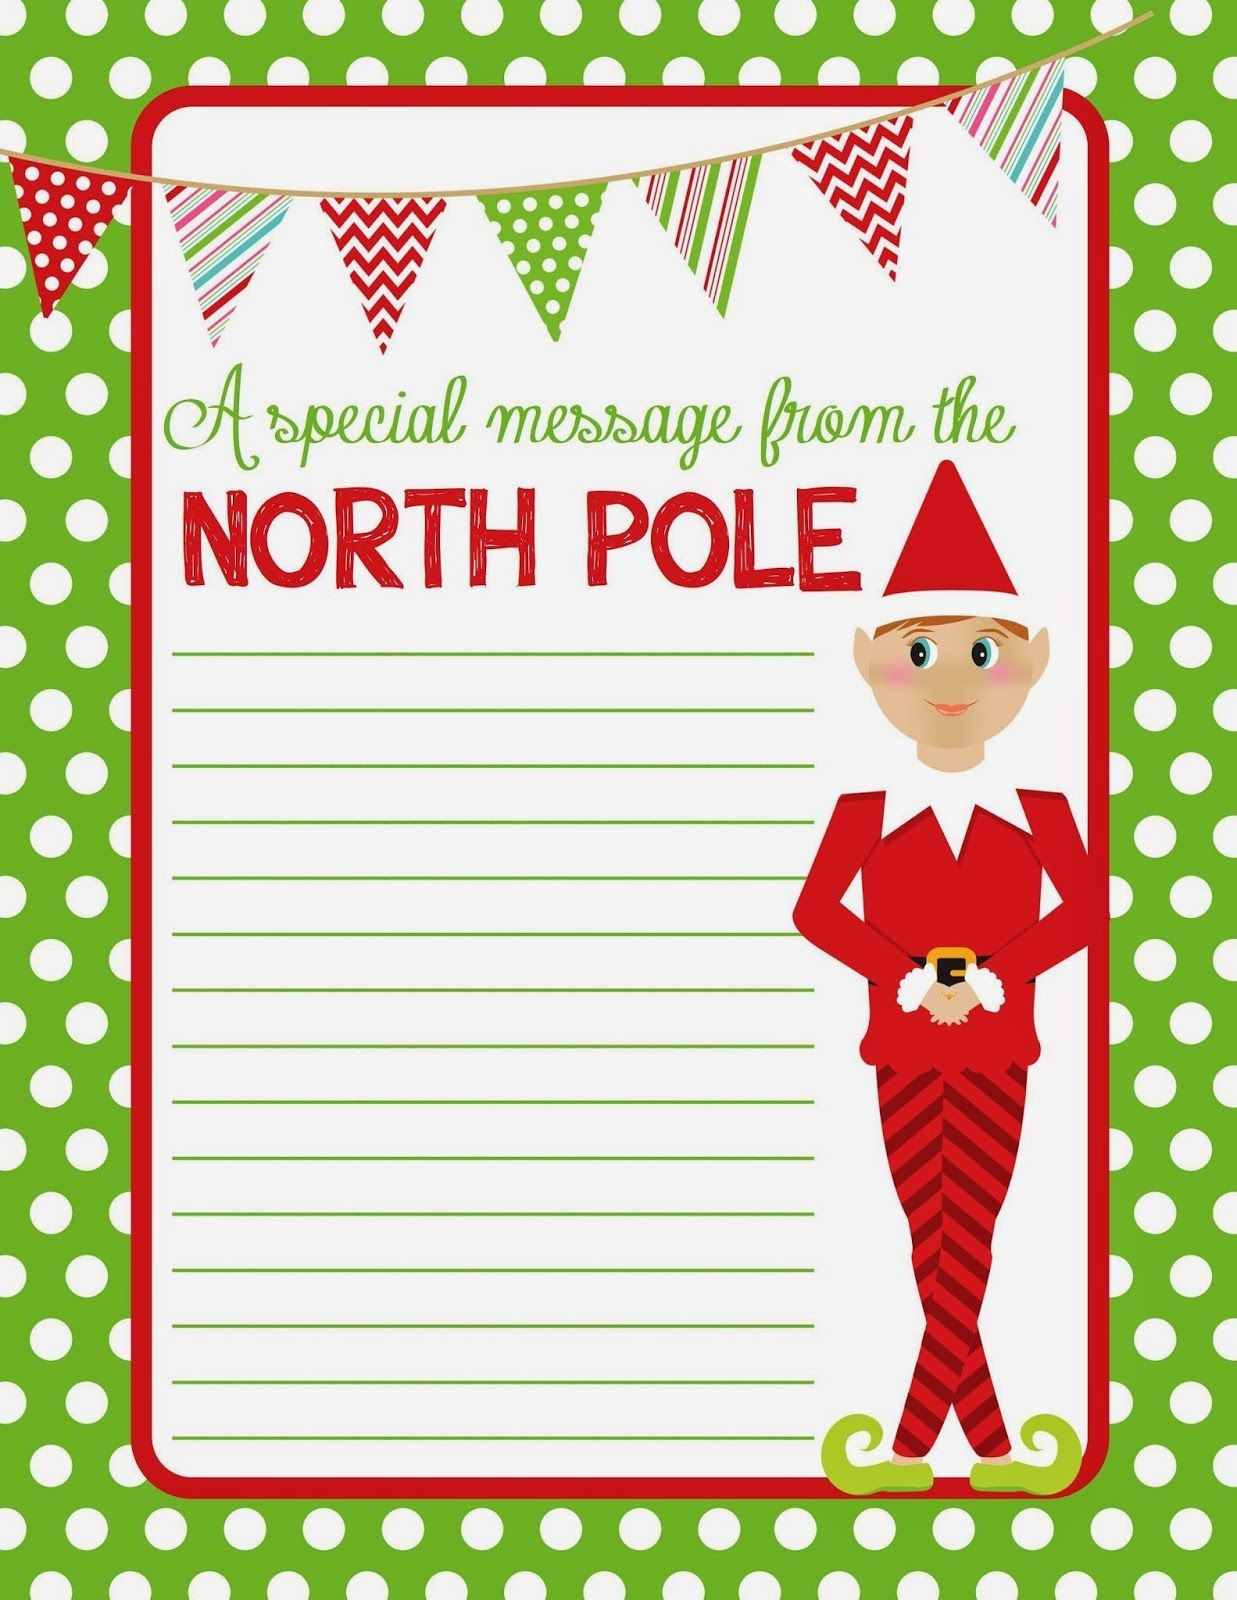 4 Best Images Of Elf On The Shelf Free Printable Christmas Paper - Free Printable Christmas Paper With Borders